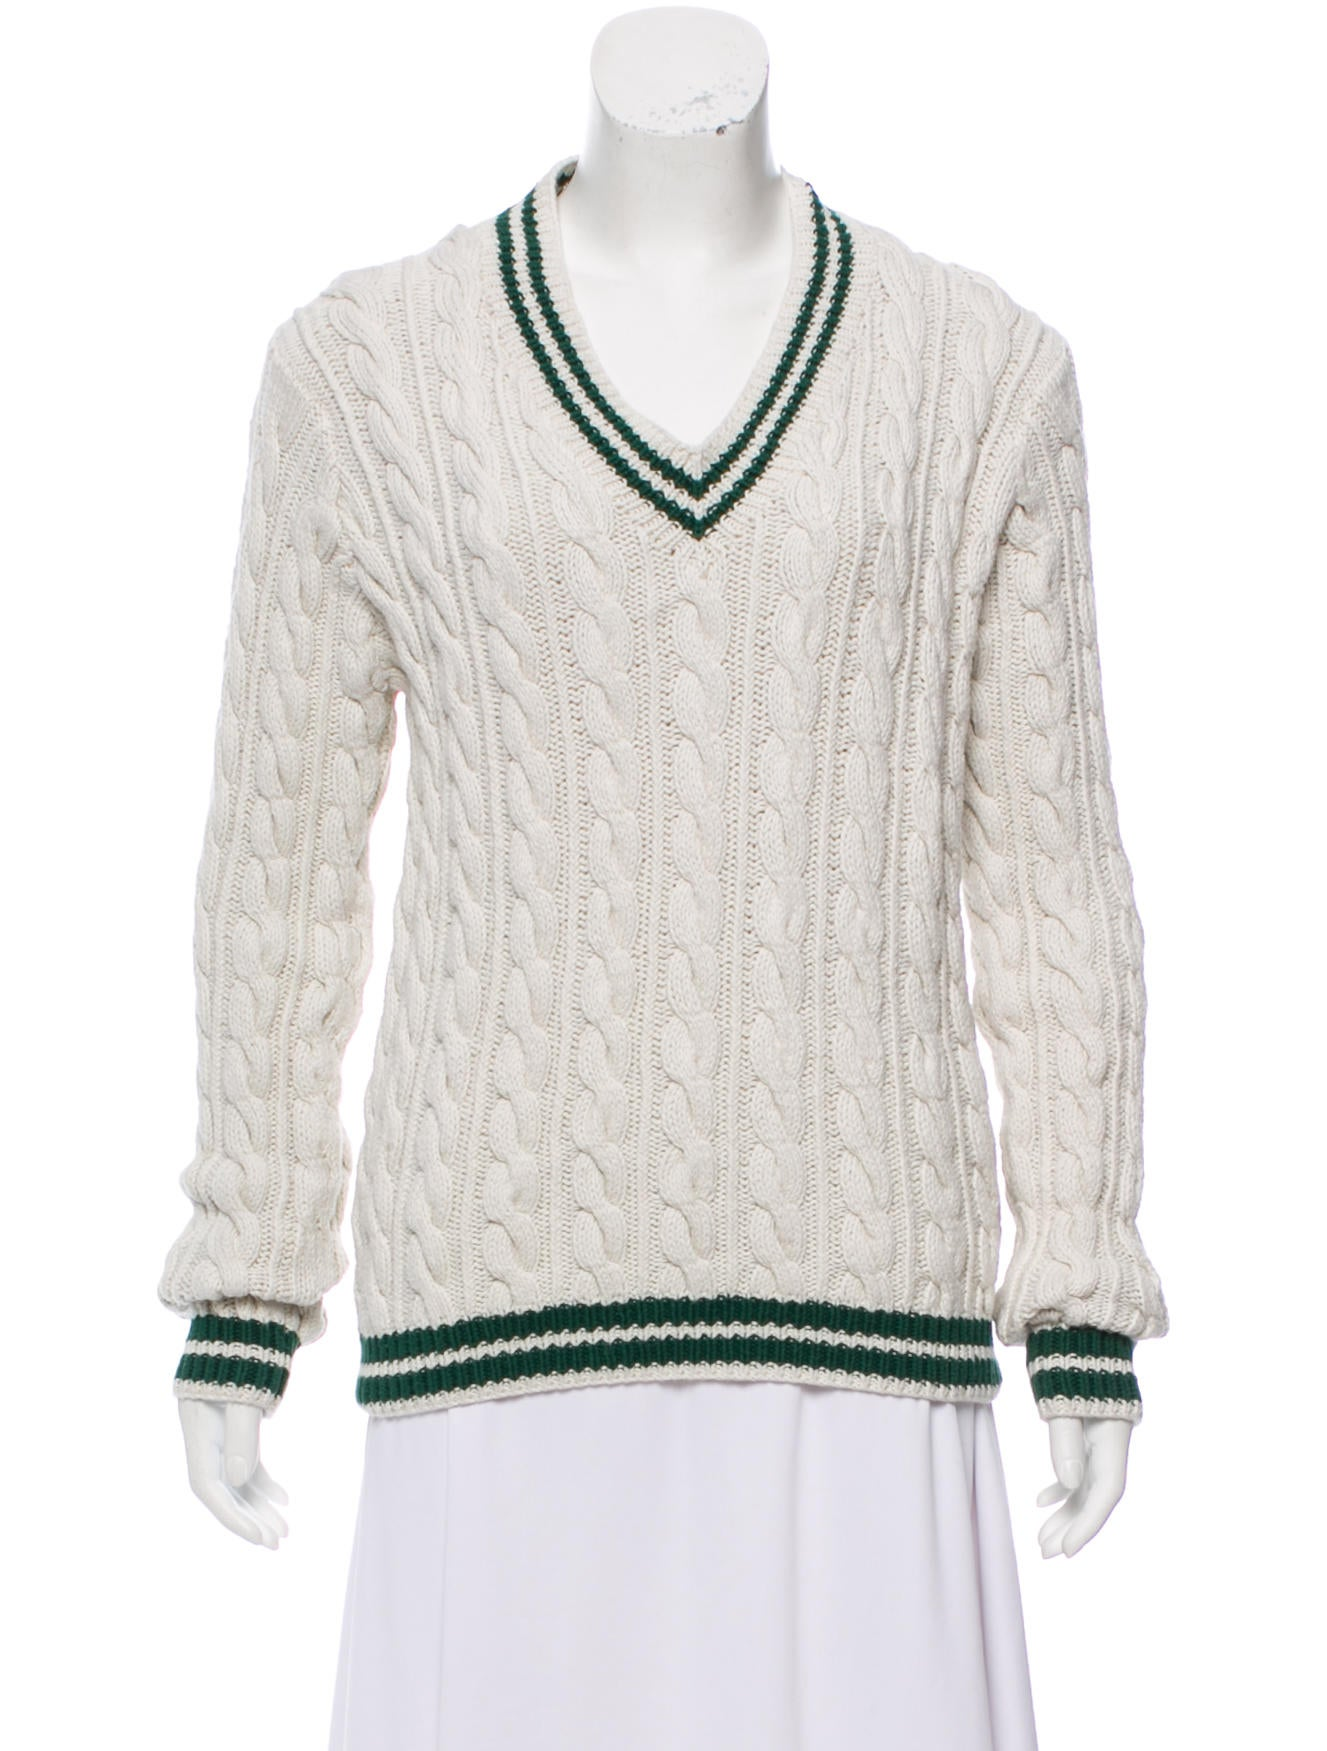 Polo Ralph Lauren Cable Knit V Neck Sweater Clothing Wprln21601